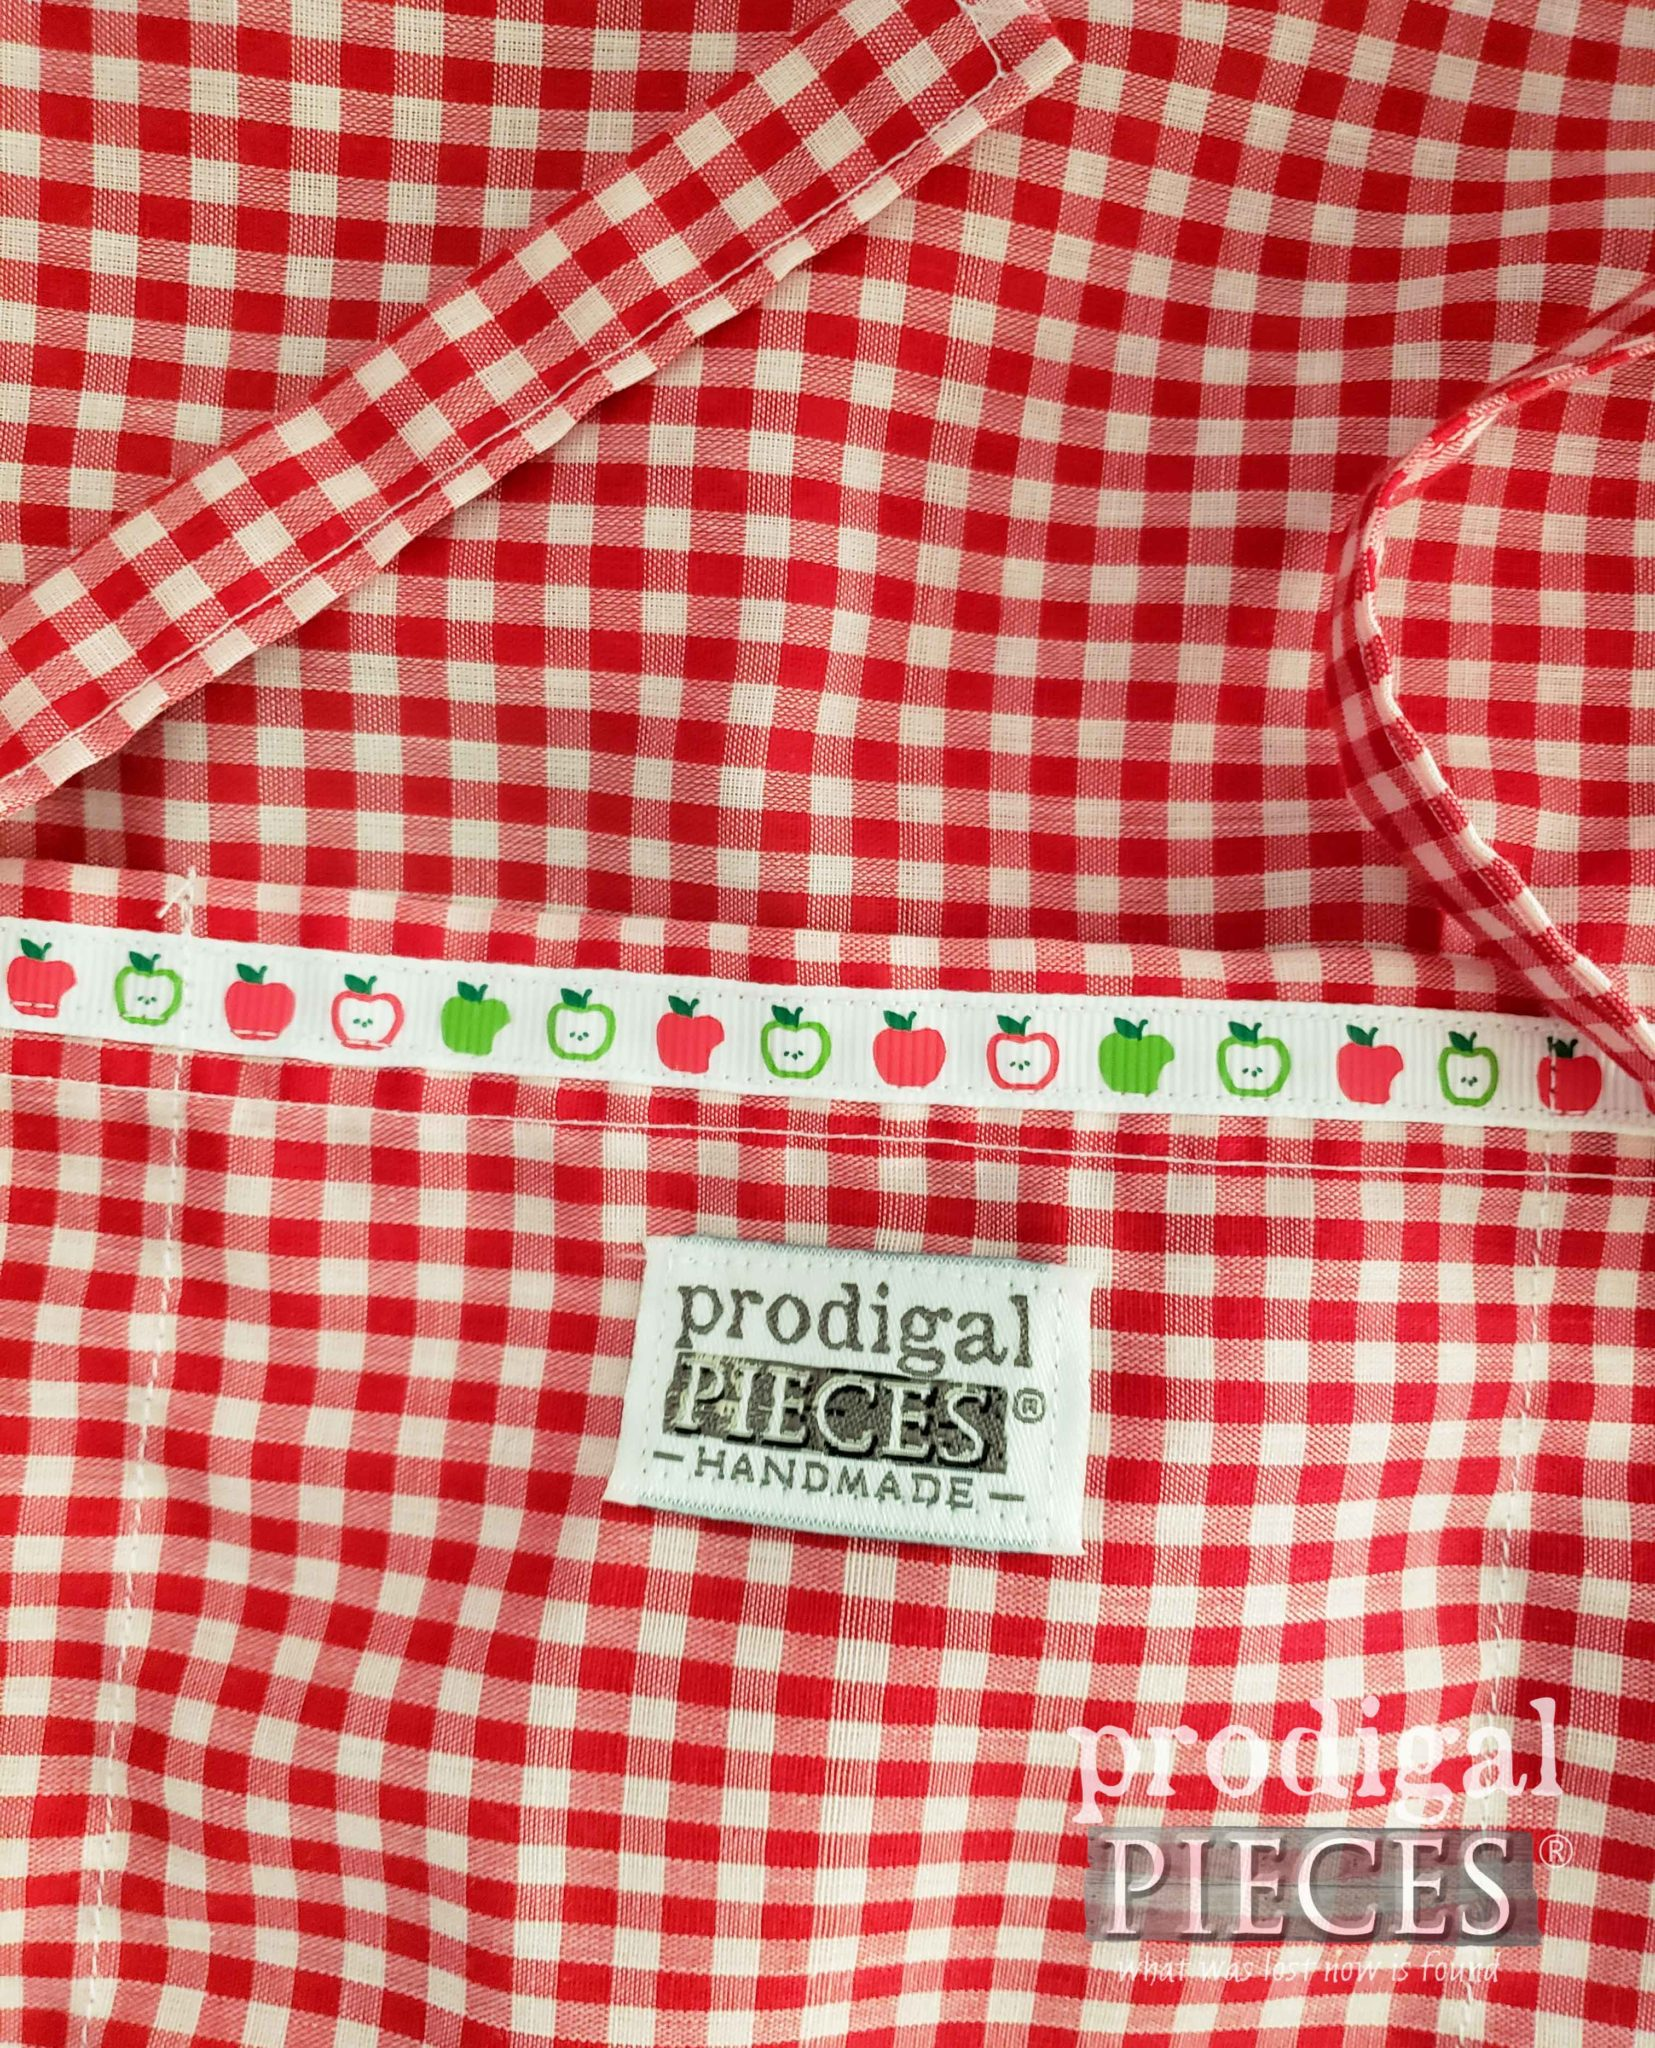 Handmade Child's Gingham Apron by Larissa of Prodigal Pieces | prodigalpieces.com